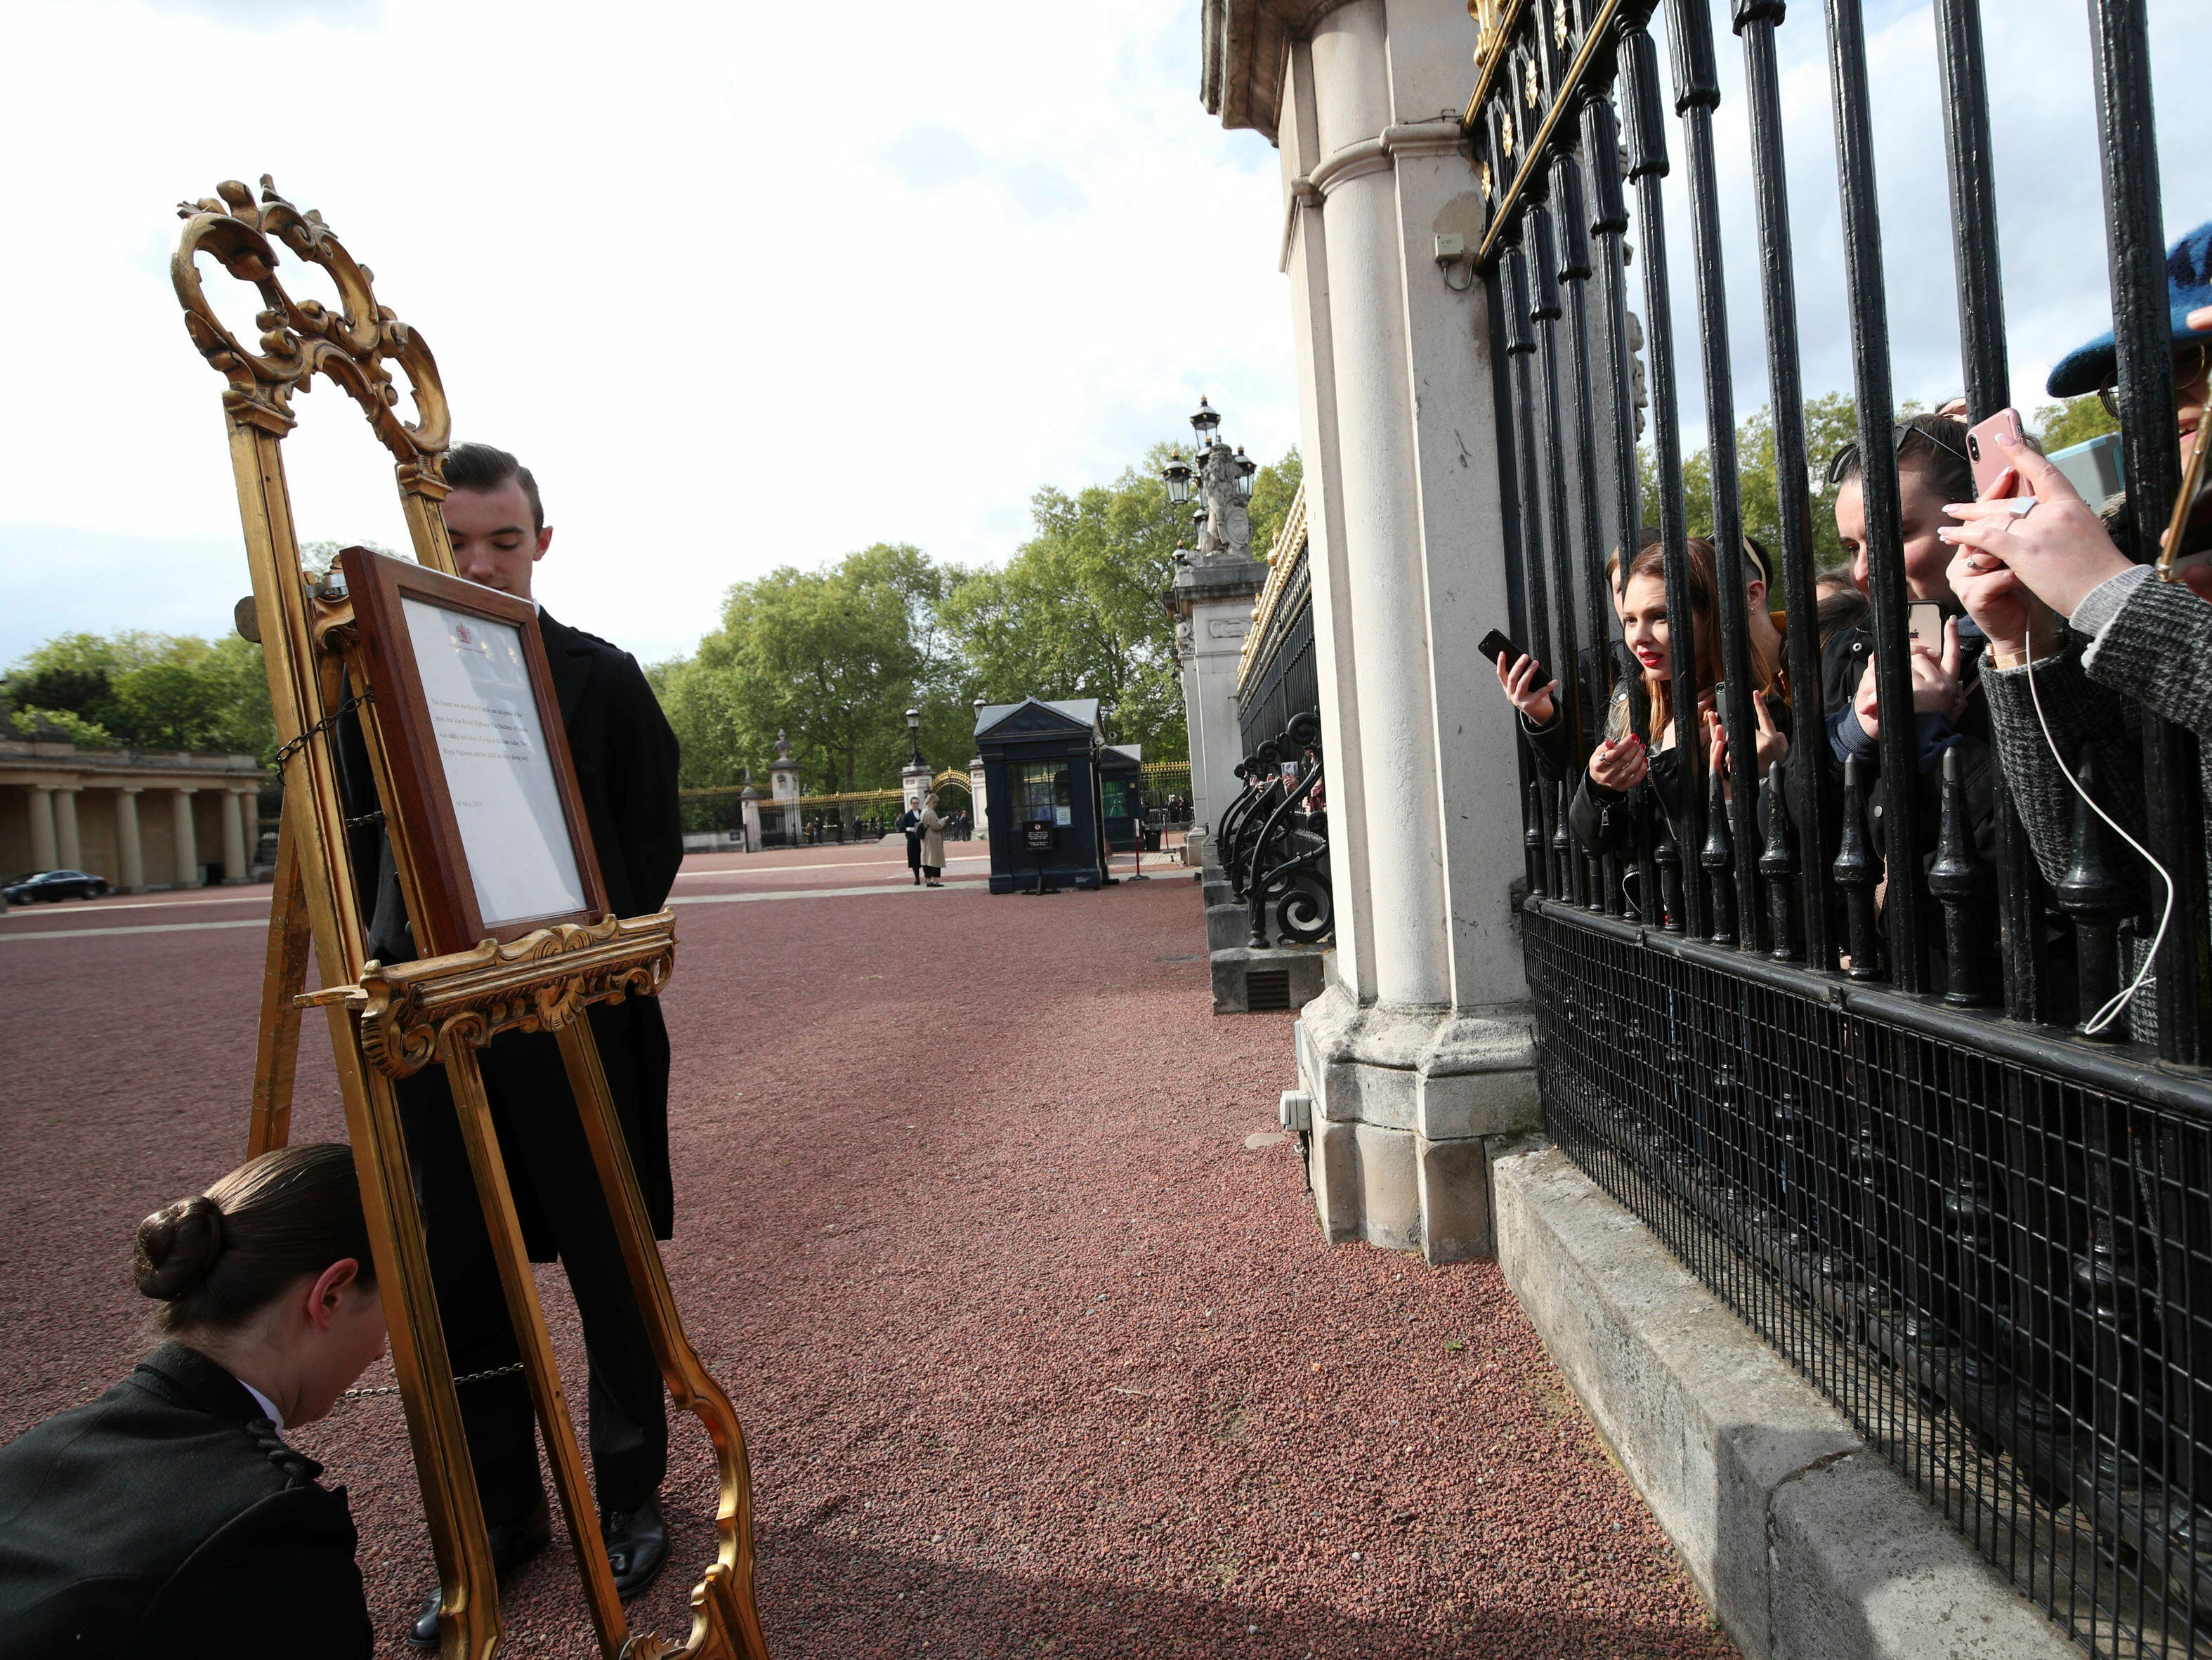 People gather outside the gates of Buckingham Palace to take pictures of the official notice, set on an easel. The official announcement is traditionally placed on public view in the courtyard of the London  palace.